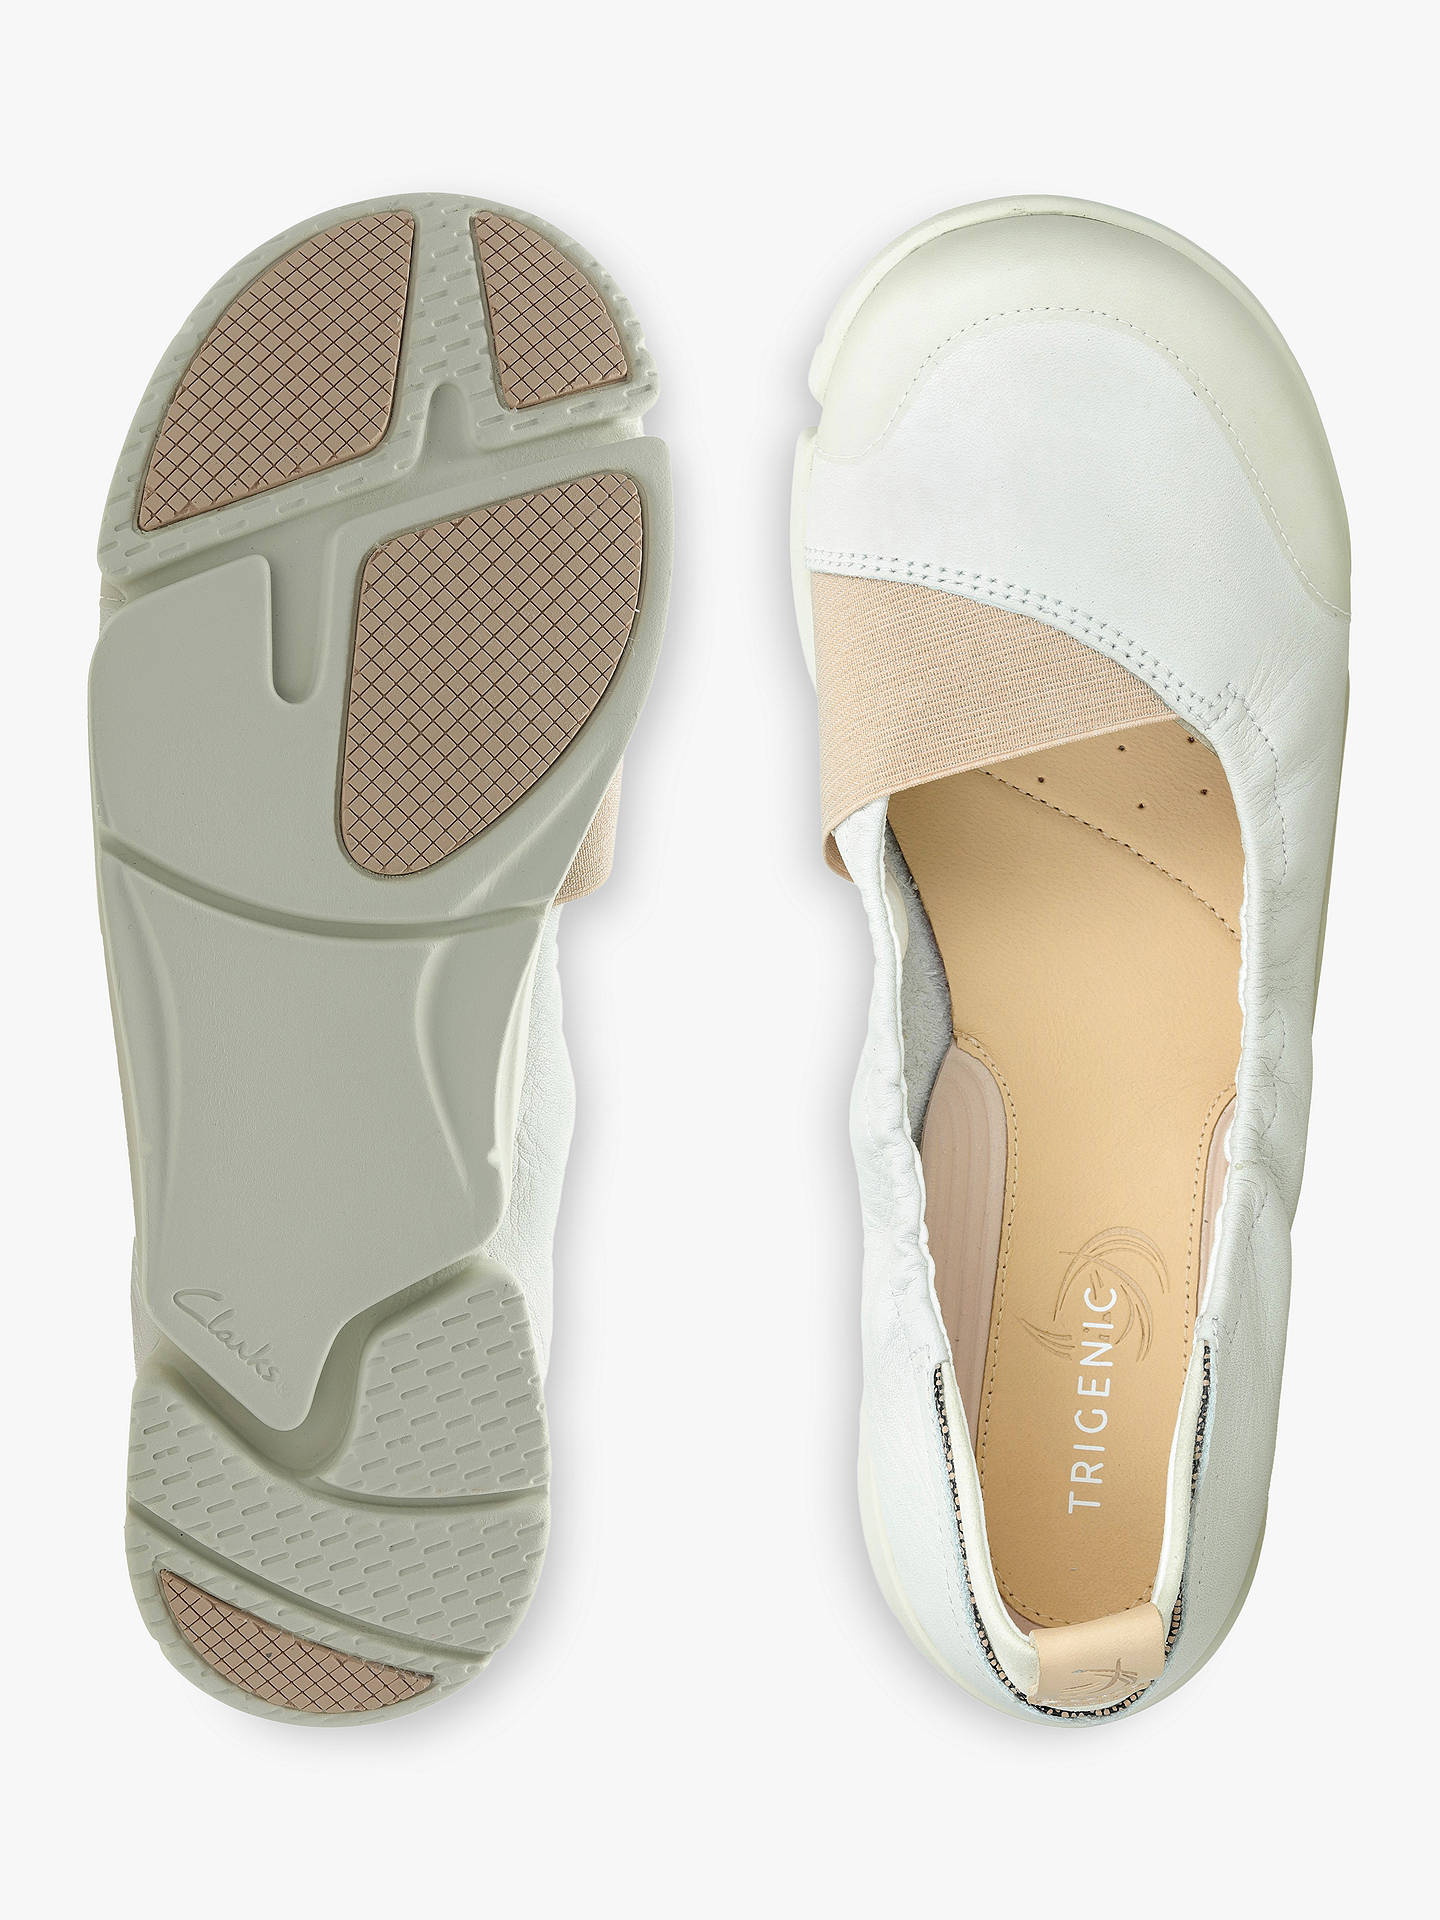 4e7d4f35cf ... Buy Clarks Tri Adapt Sporty Pumps, White Leather, 5 Online at  johnlewis.com ...